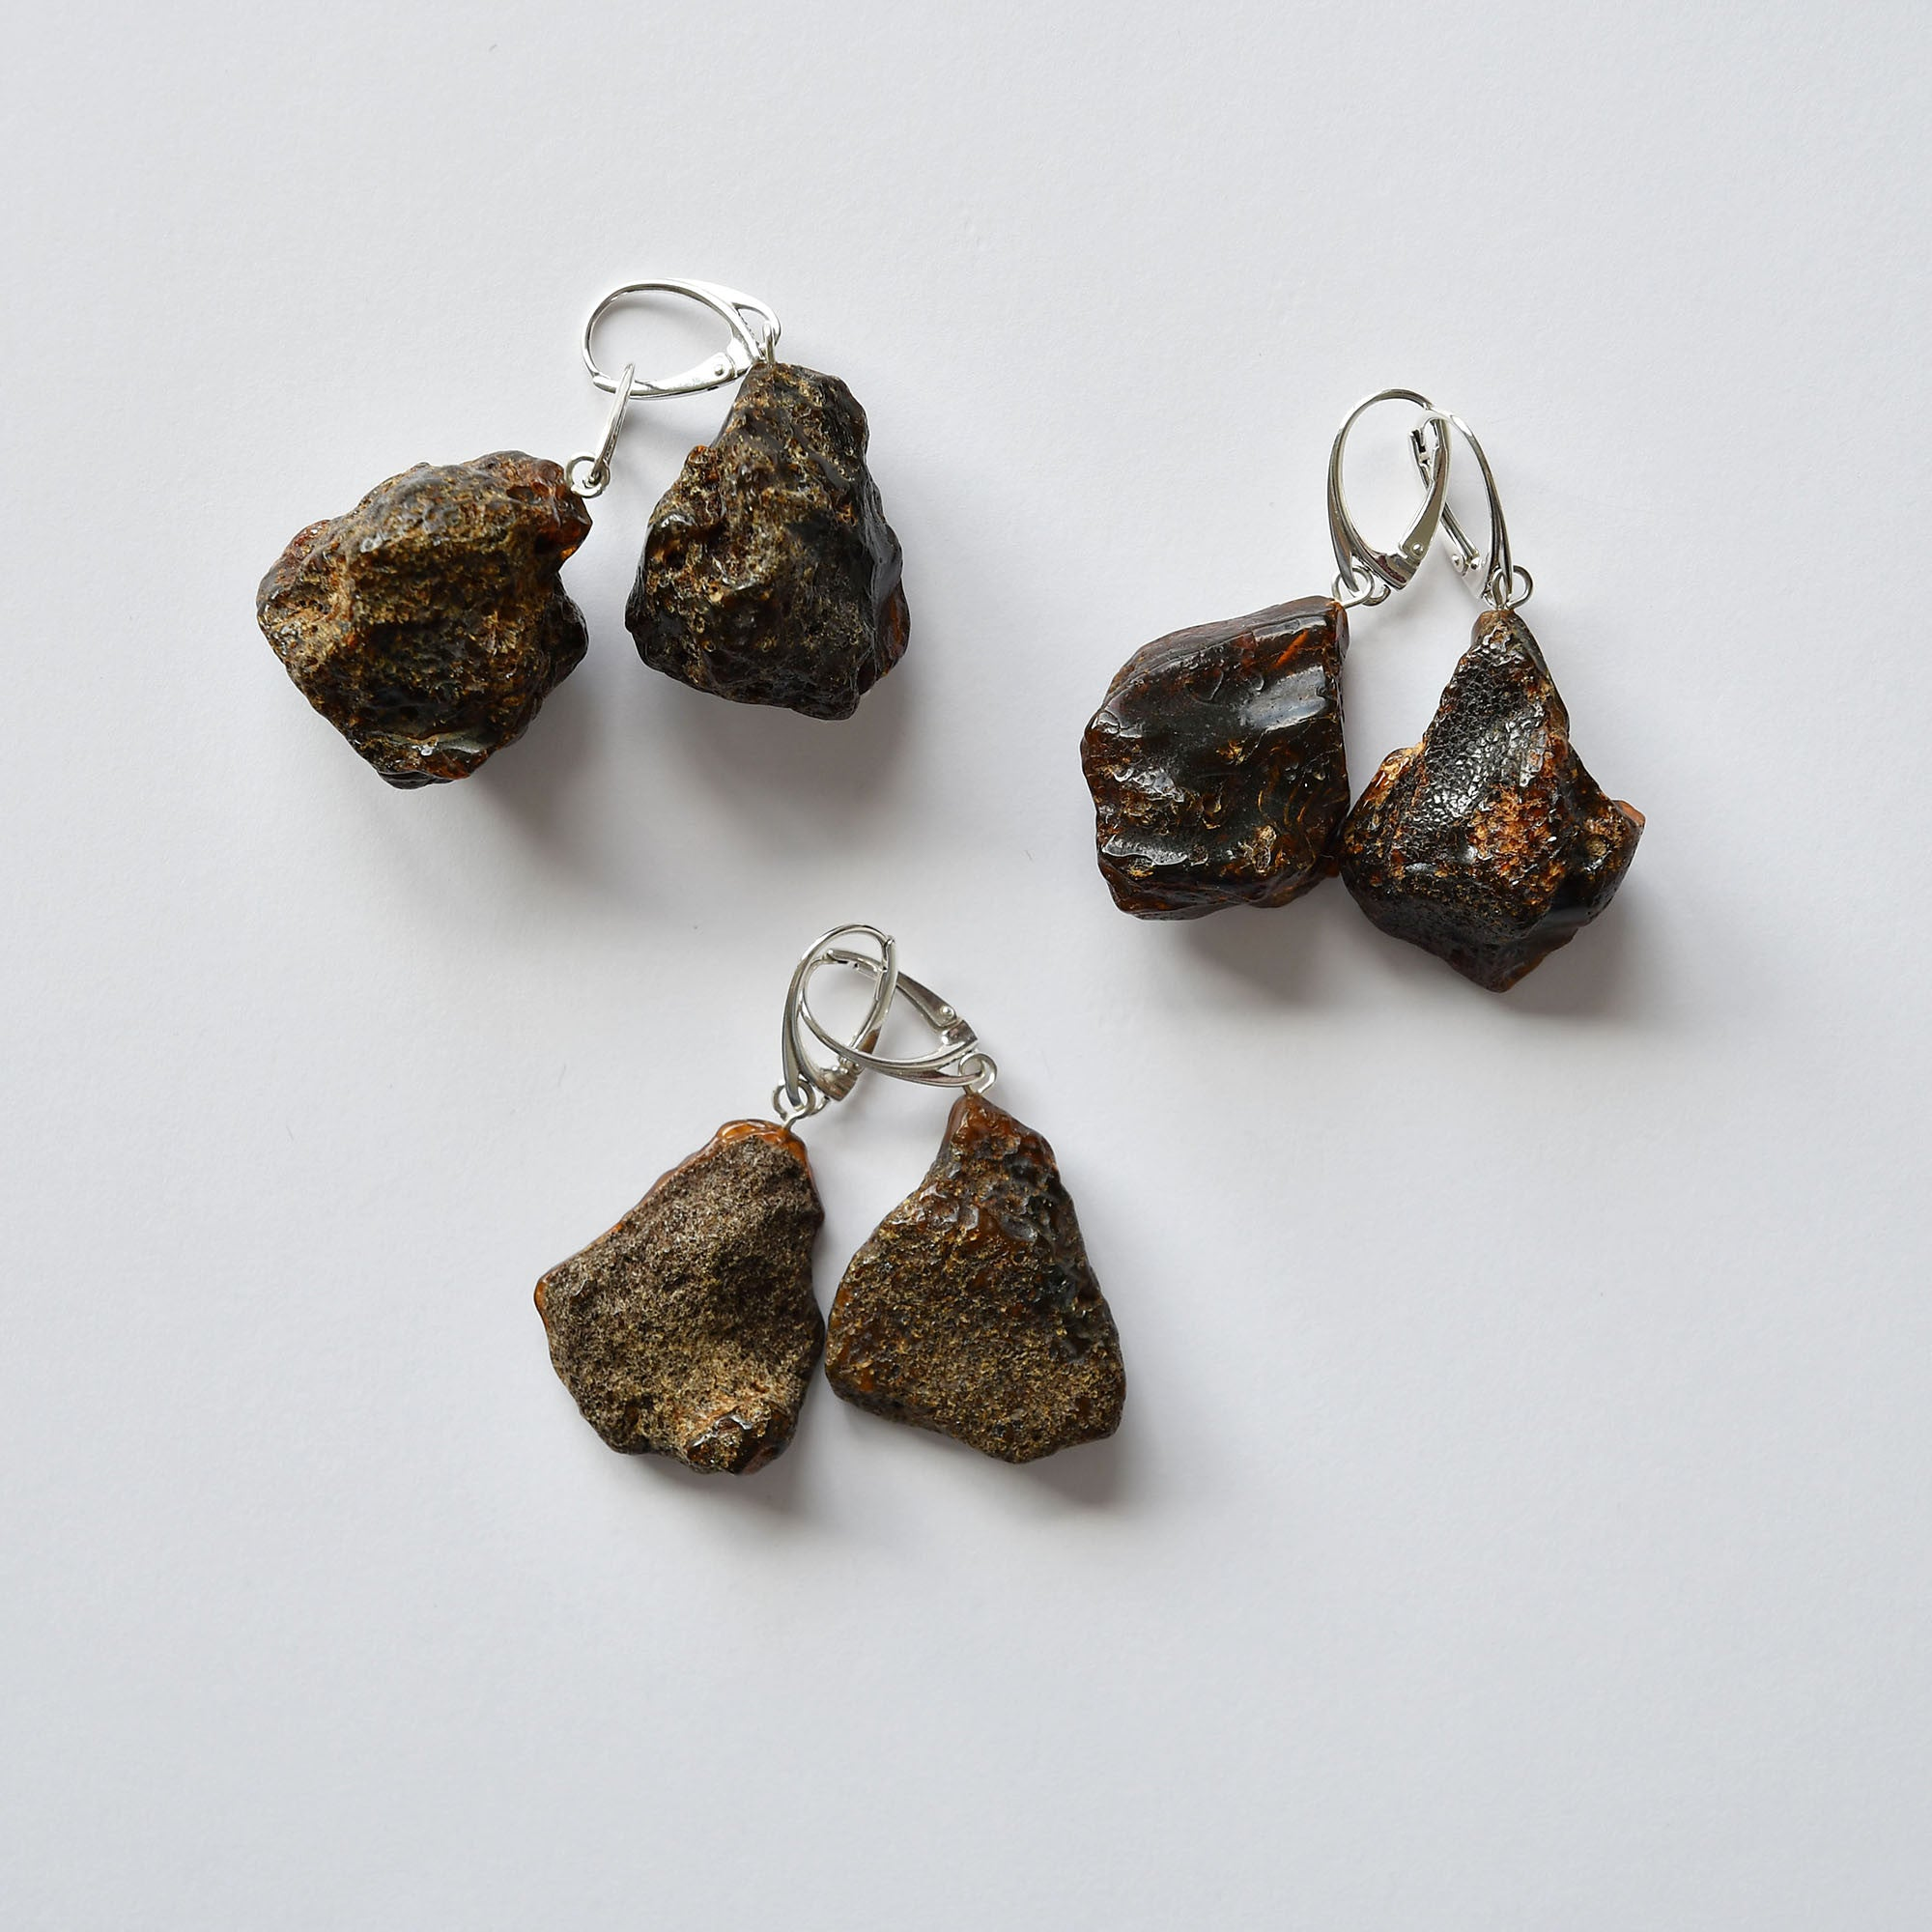 Earrings of unpolished amber with silver fastening